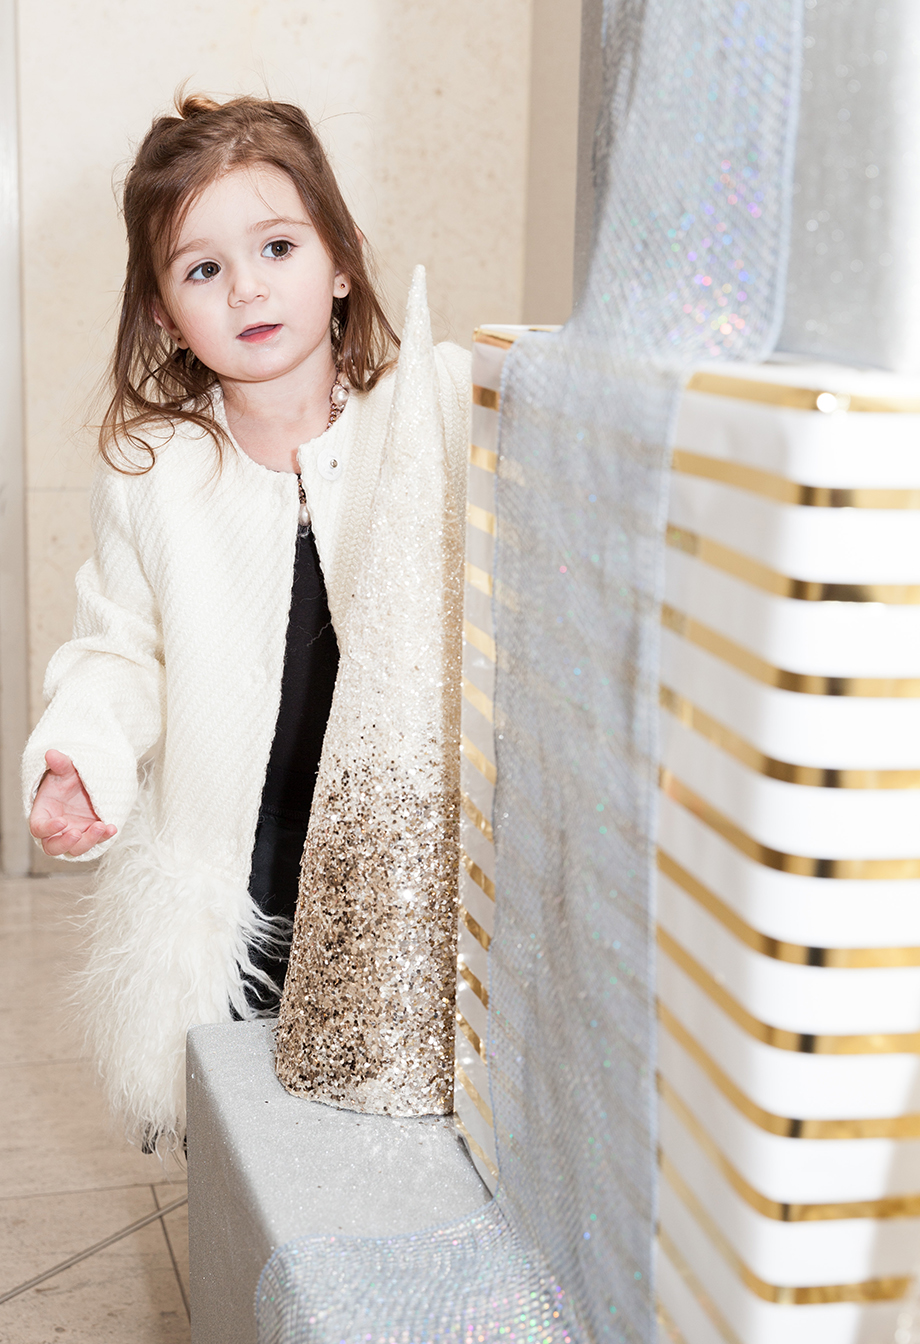 A white feather Mona Lisa coat at the Santa Suite at the Swissotel.